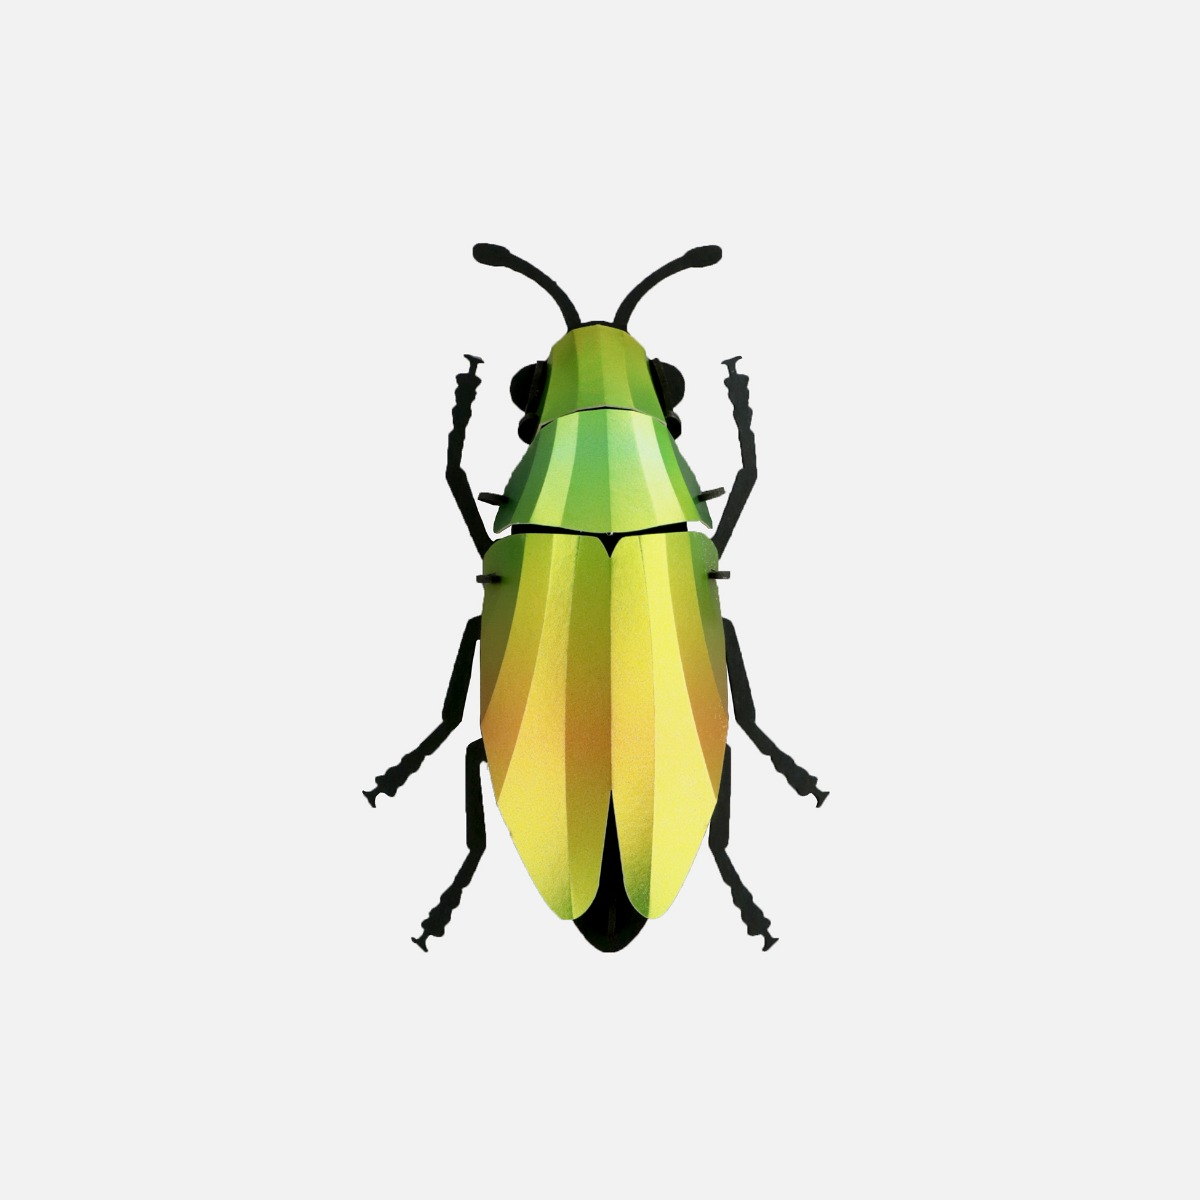 Jewel Beetle puzzle